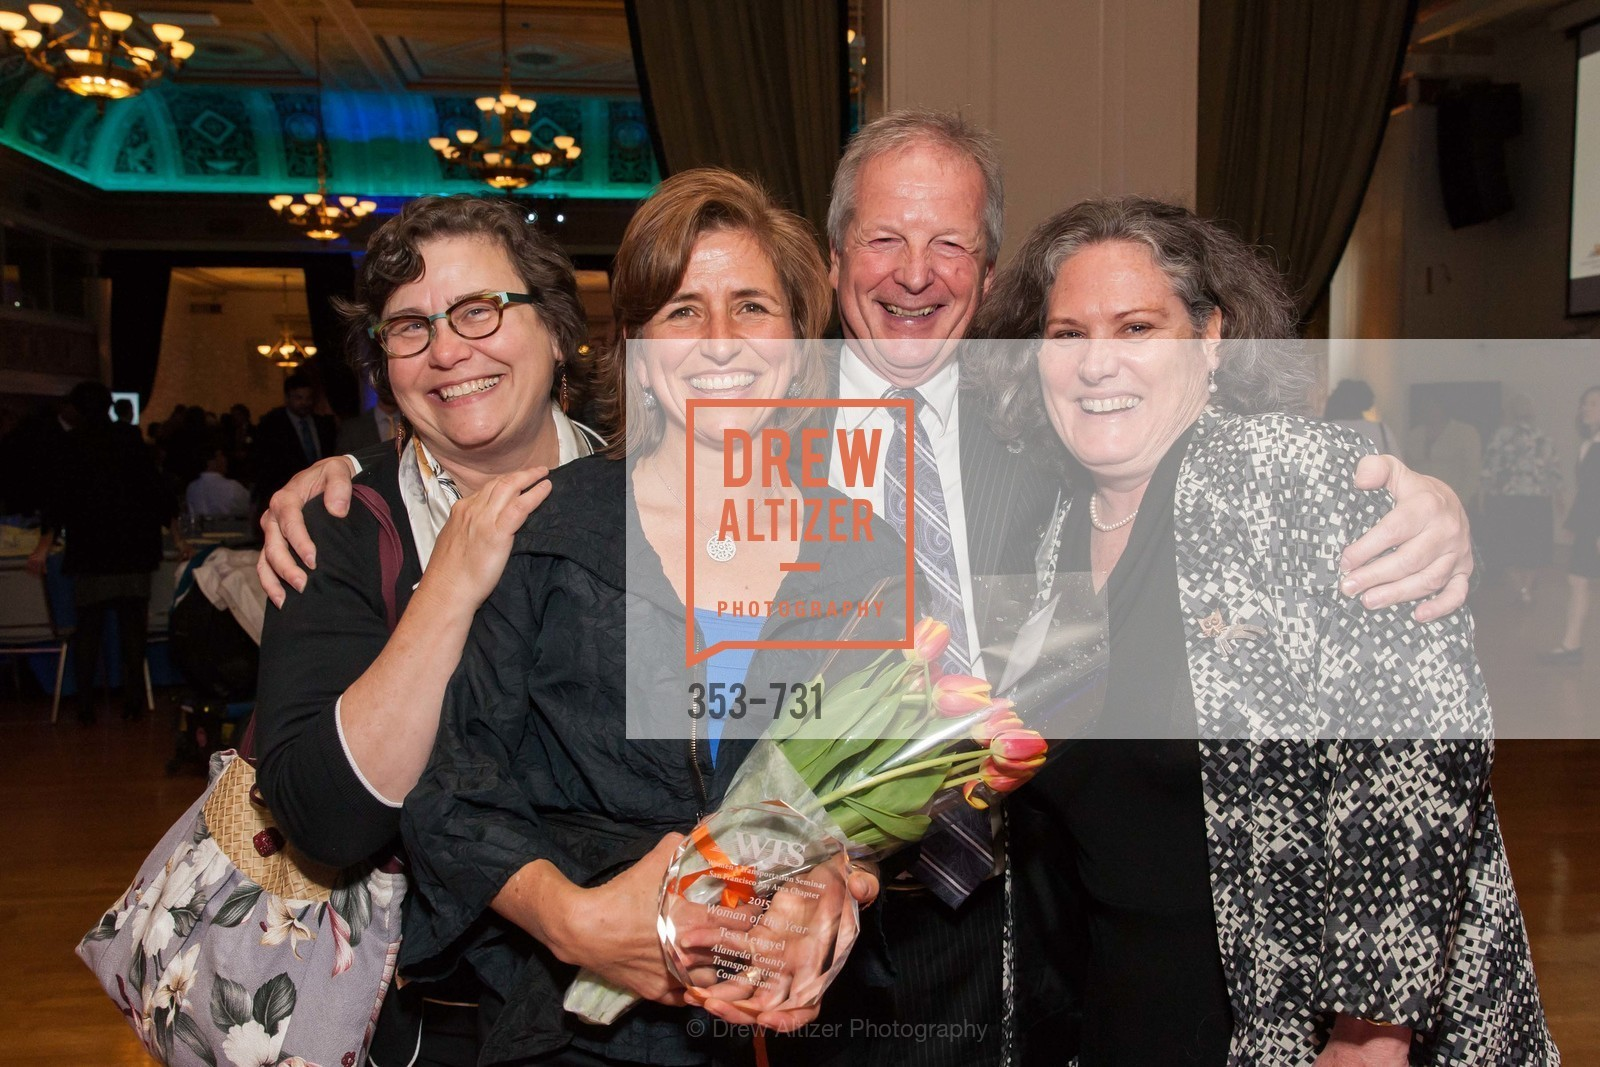 Tess Lengyel, Mark Green, Christine Monsen, WOMEN'S TRANSPORTATION SEMINAR SF Bay Area Chapter Annual Scholarship Awards, US, May 15th, 2015,Drew Altizer, Drew Altizer Photography, full-service agency, private events, San Francisco photographer, photographer california